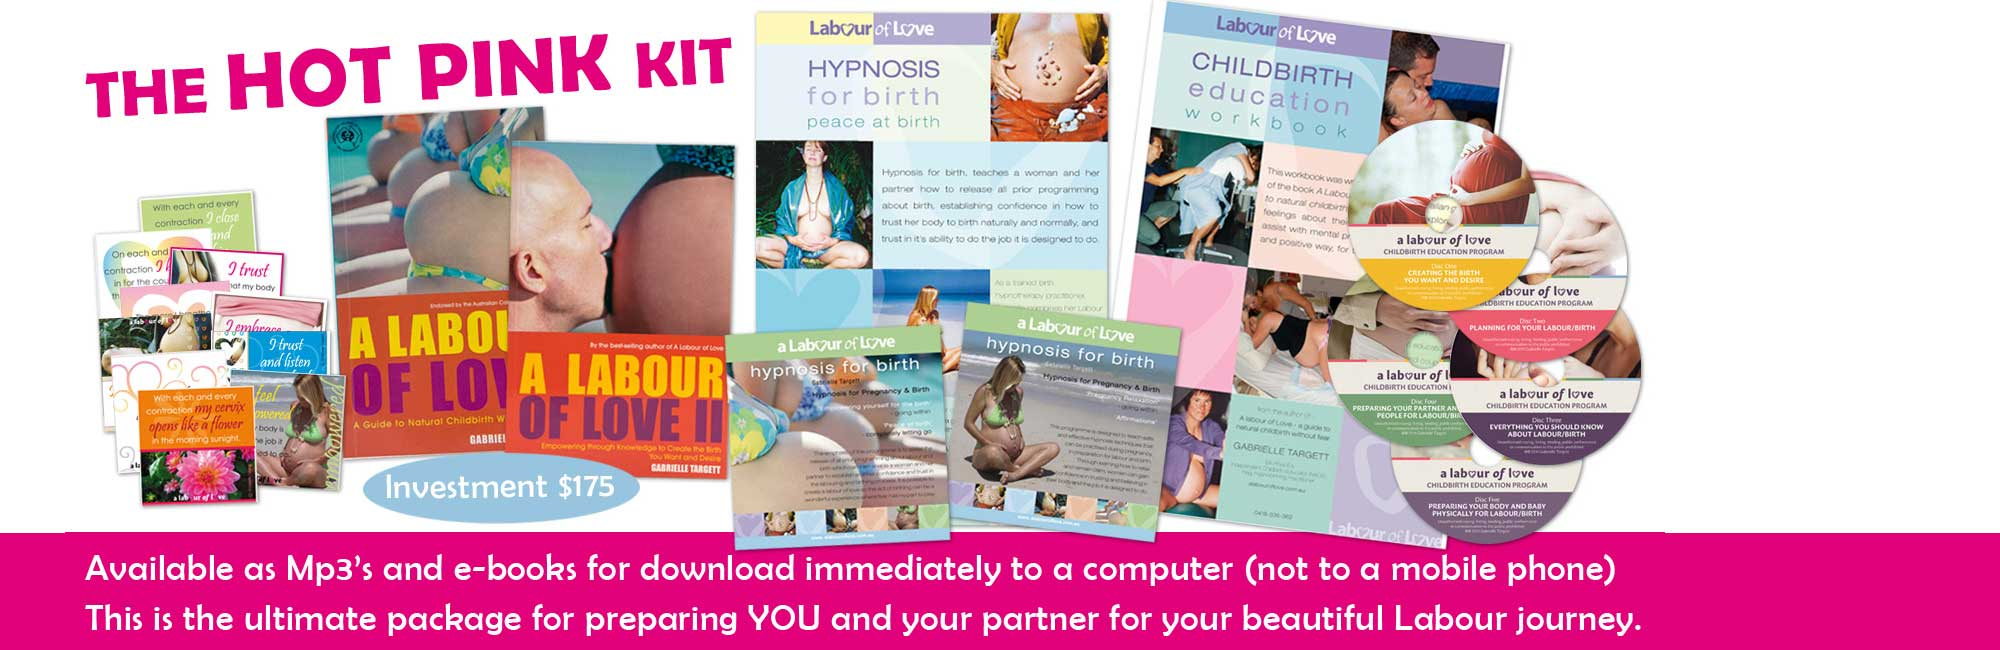 Hot Pink Kit - preparing You and your partner for your beautiful Labour journey